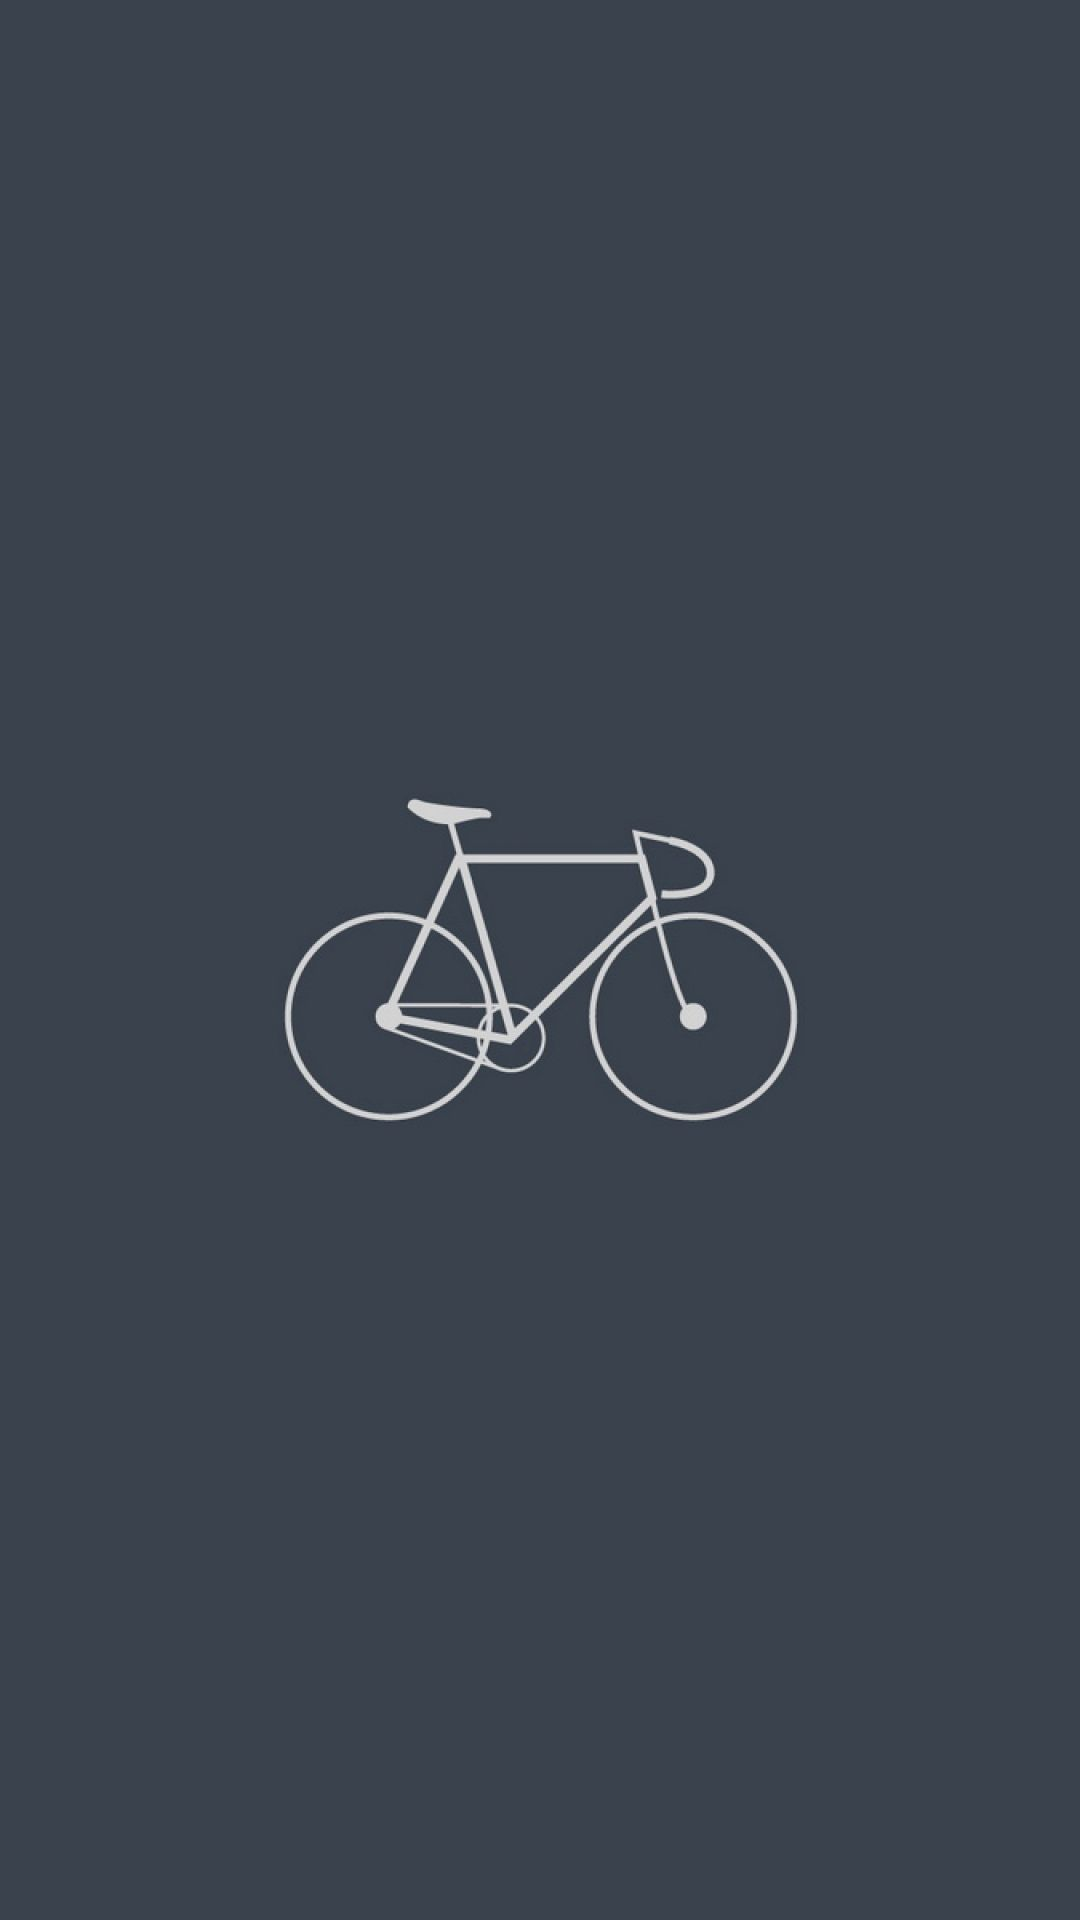 Bicycle Minimalist Minimalist Iphone Iphone Wallpaper Hipster Simple Iphone Wallpaper